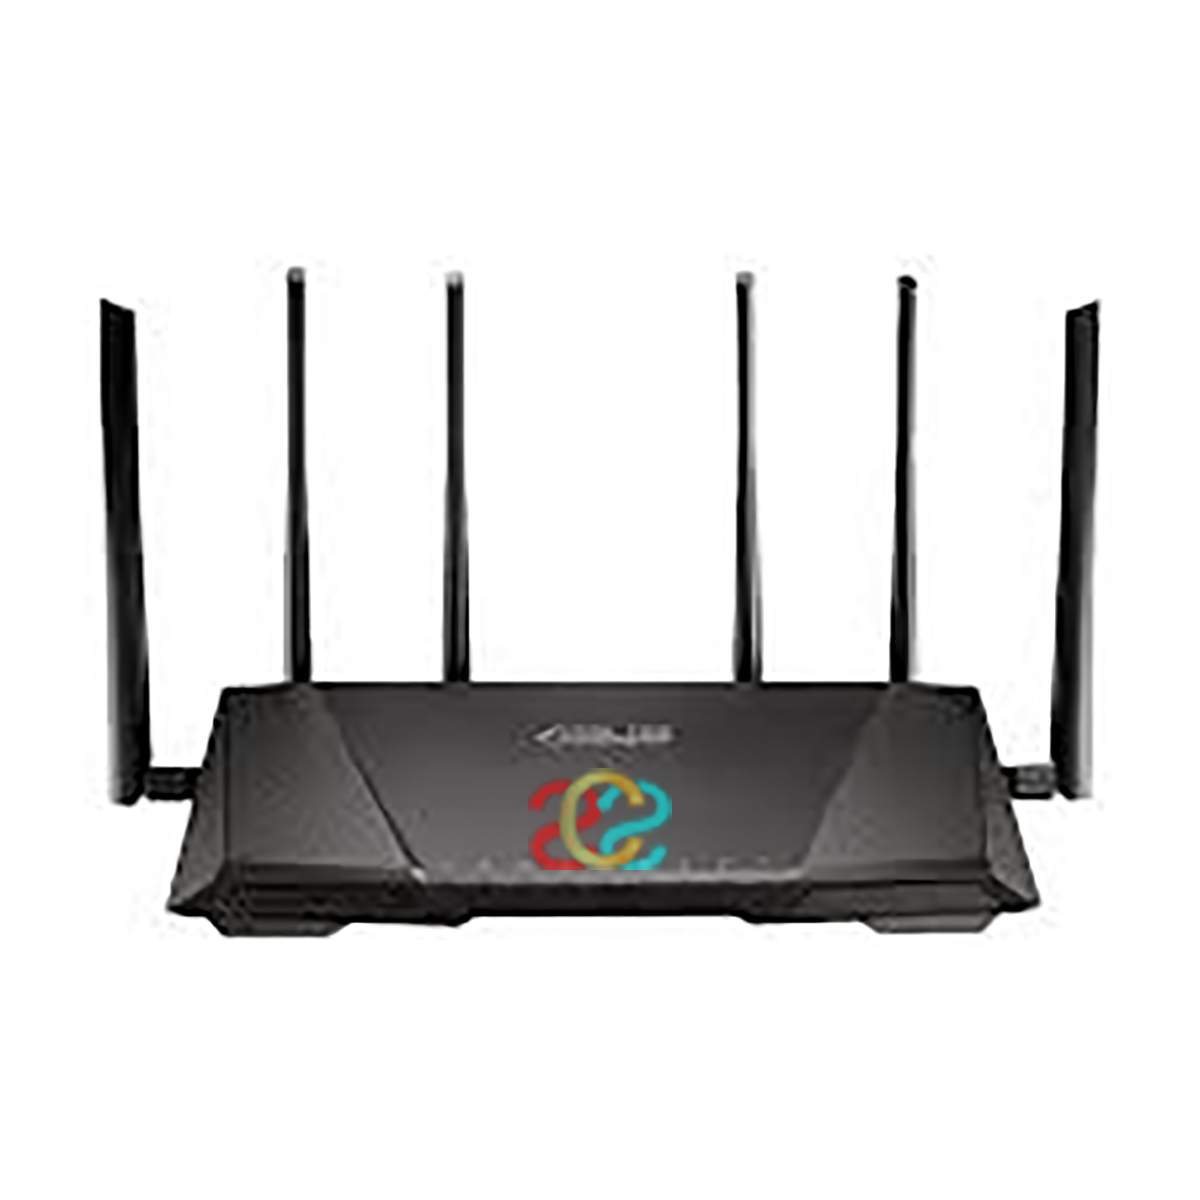 Asus RT-AC3200 3200 Mbps Gigabit Tri-Band Wi-Fi Router